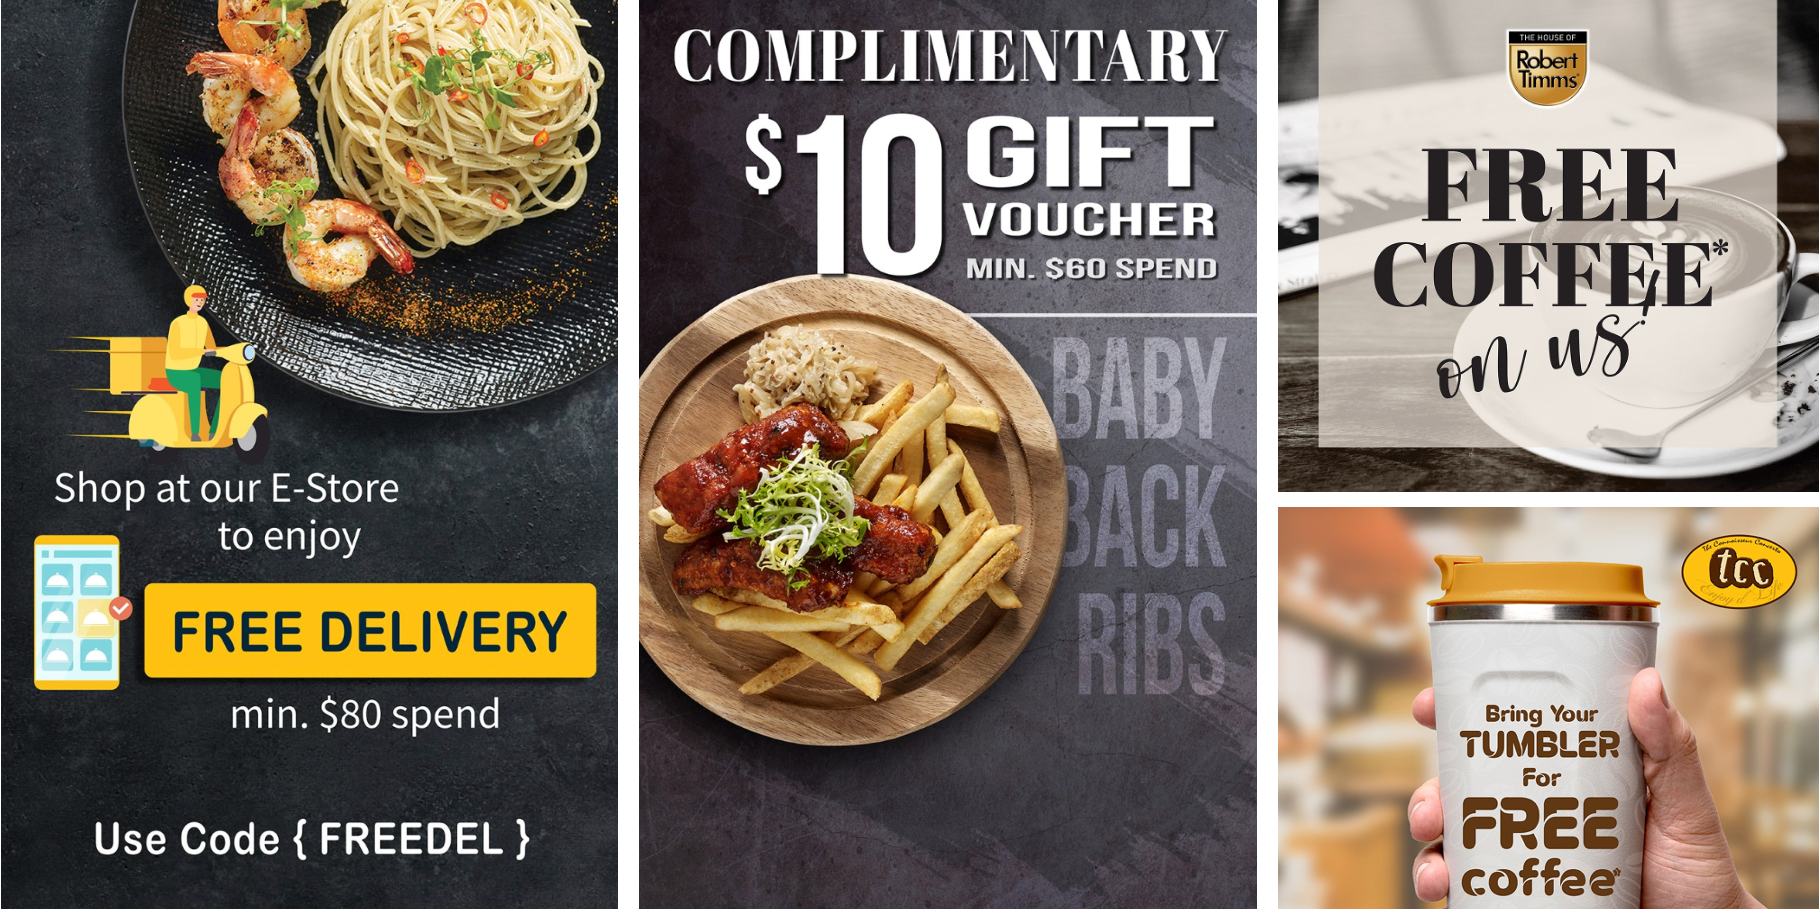 [Promotion] $10 Takeaway Voucher, FREE Coffee & FREE Delivery from tcc & The House Of Robert Timms